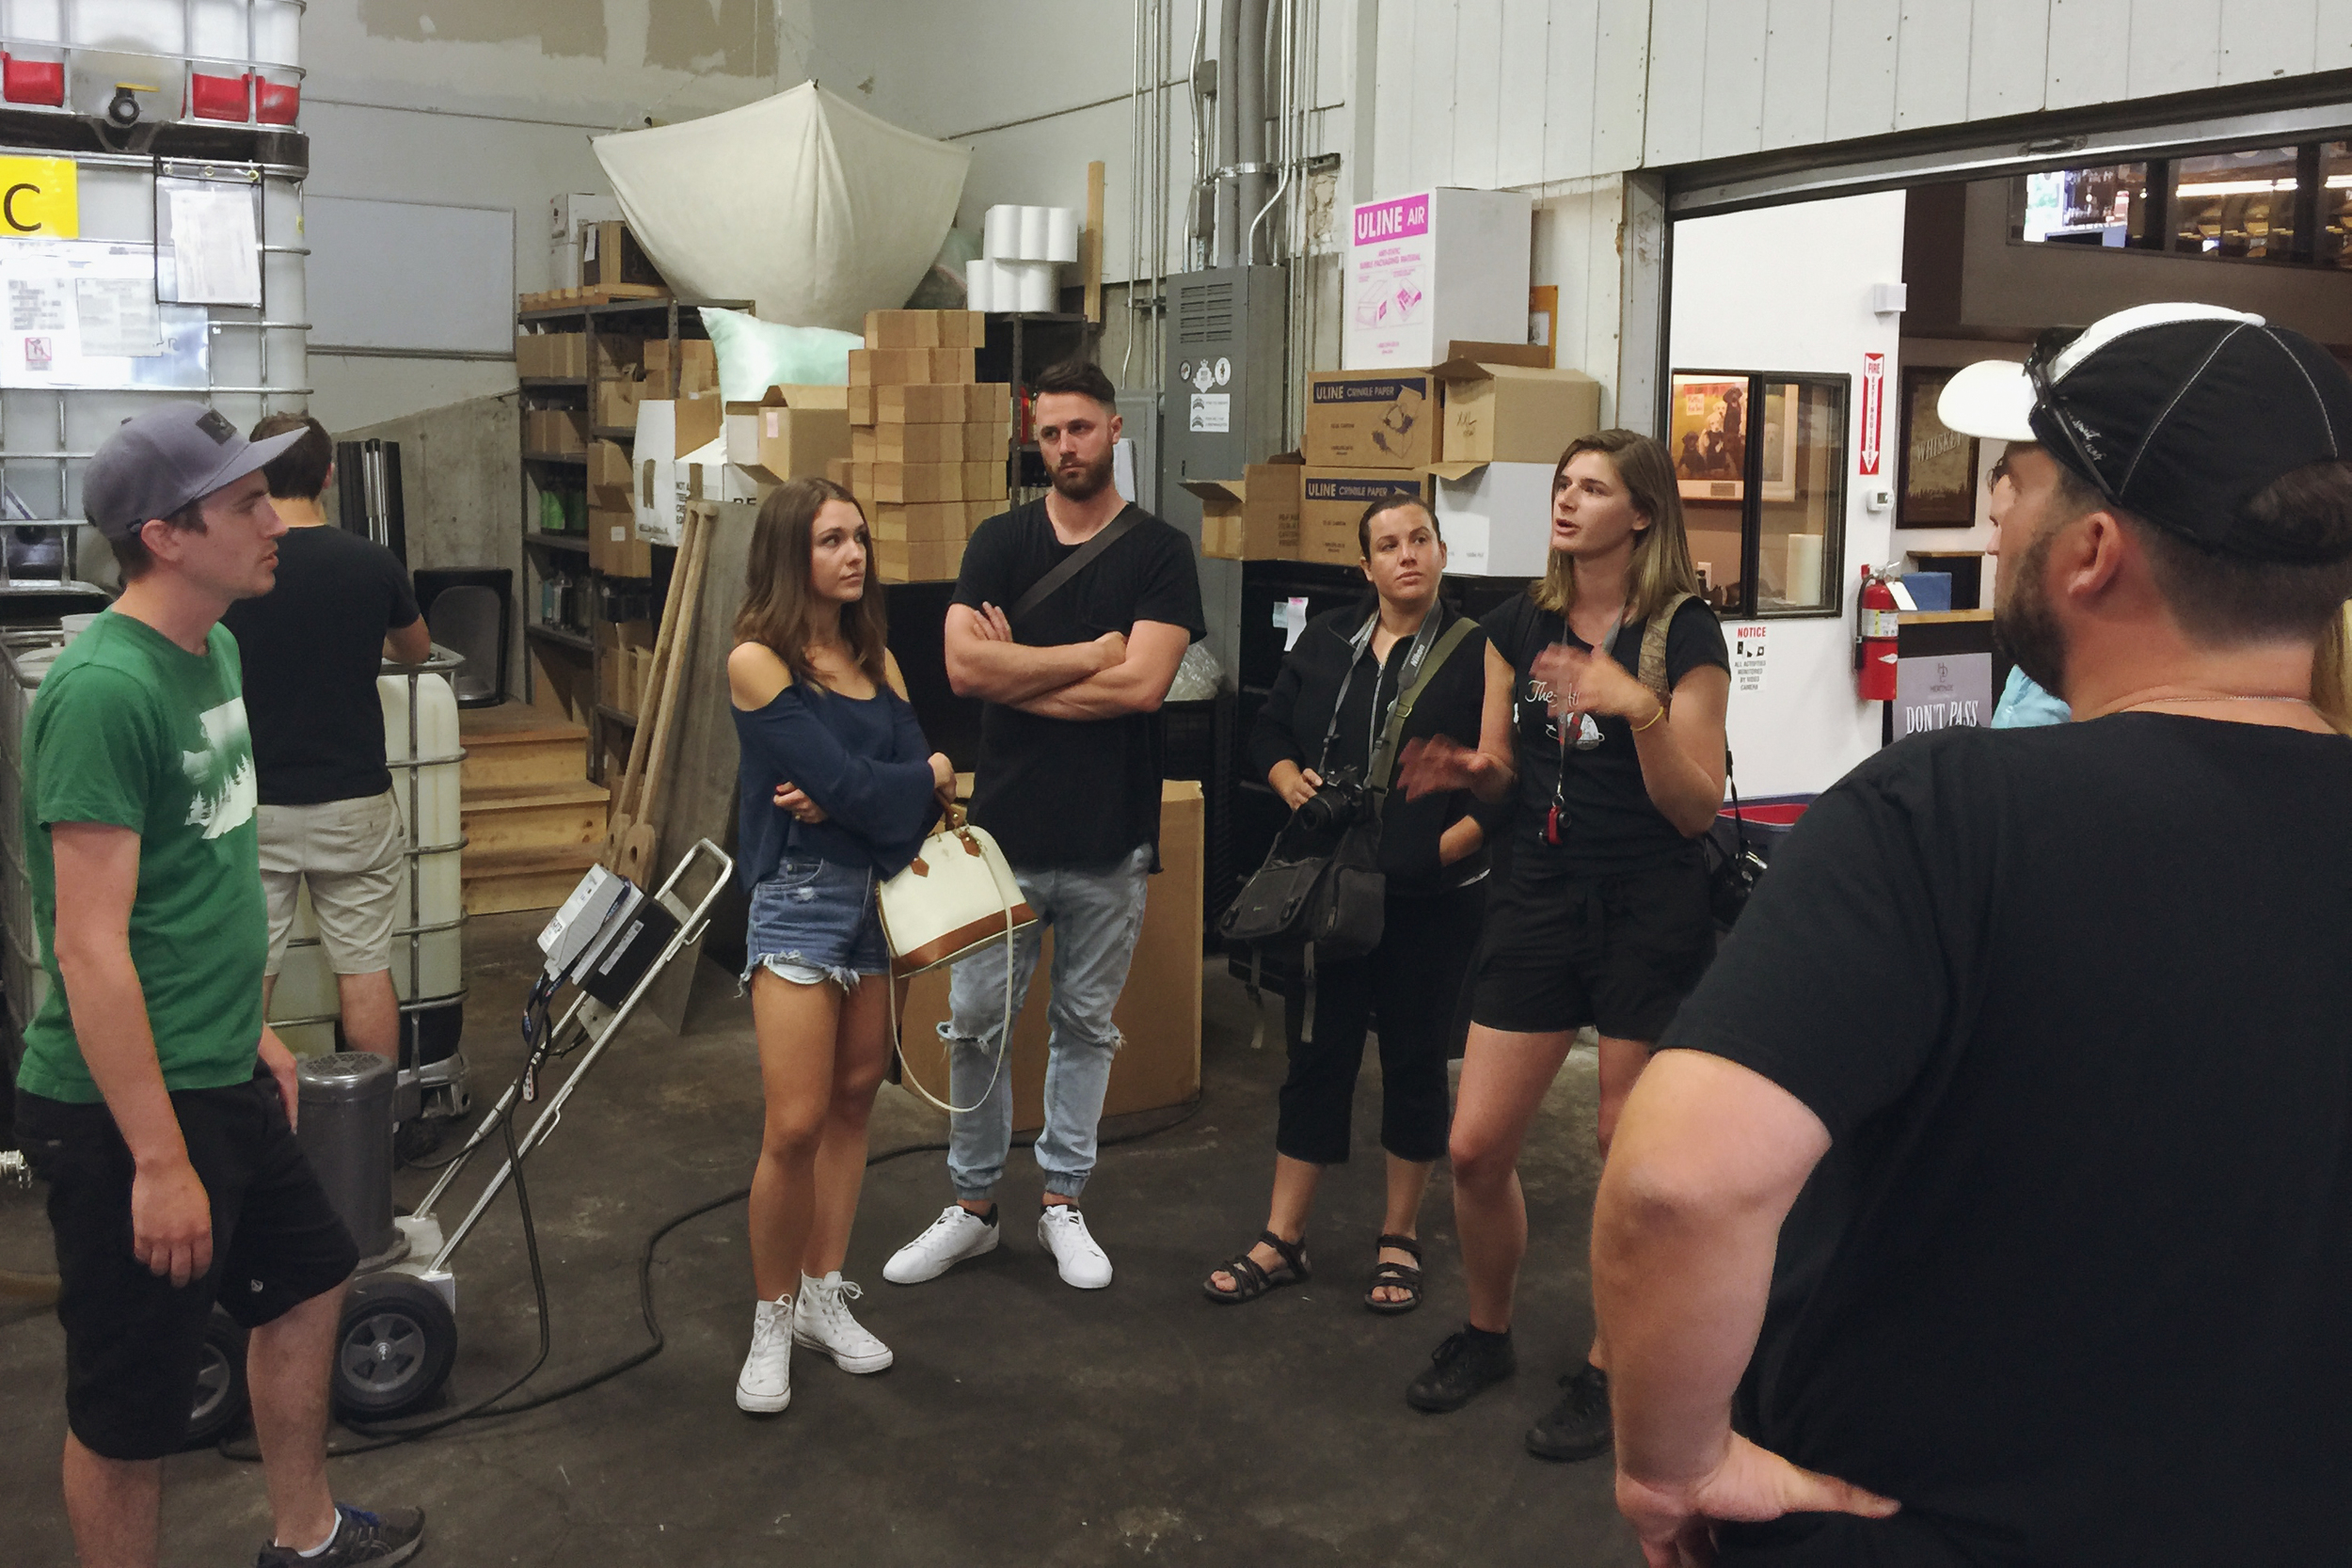 Q&A with Stiefel and other staff on our tour